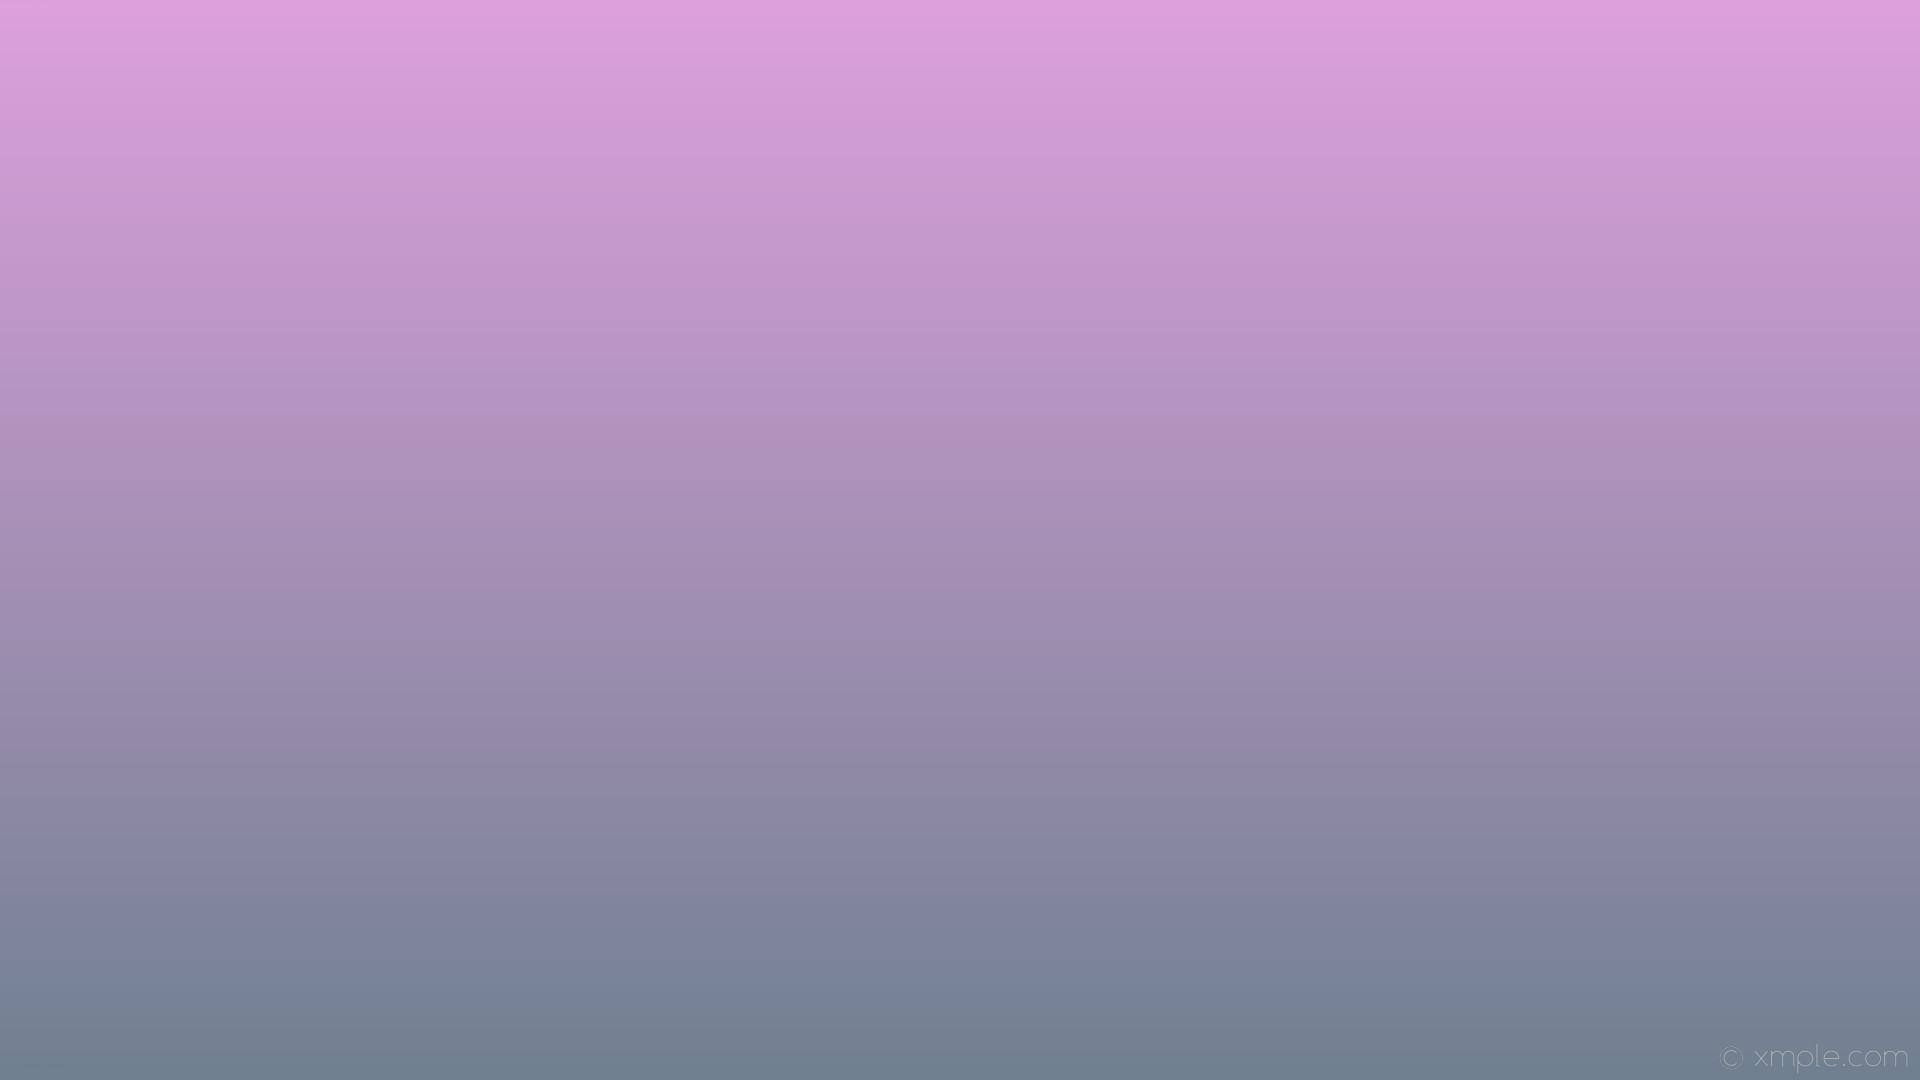 wallpaper linear purple grey gradient plum slate gray #dda0dd #708090 90°